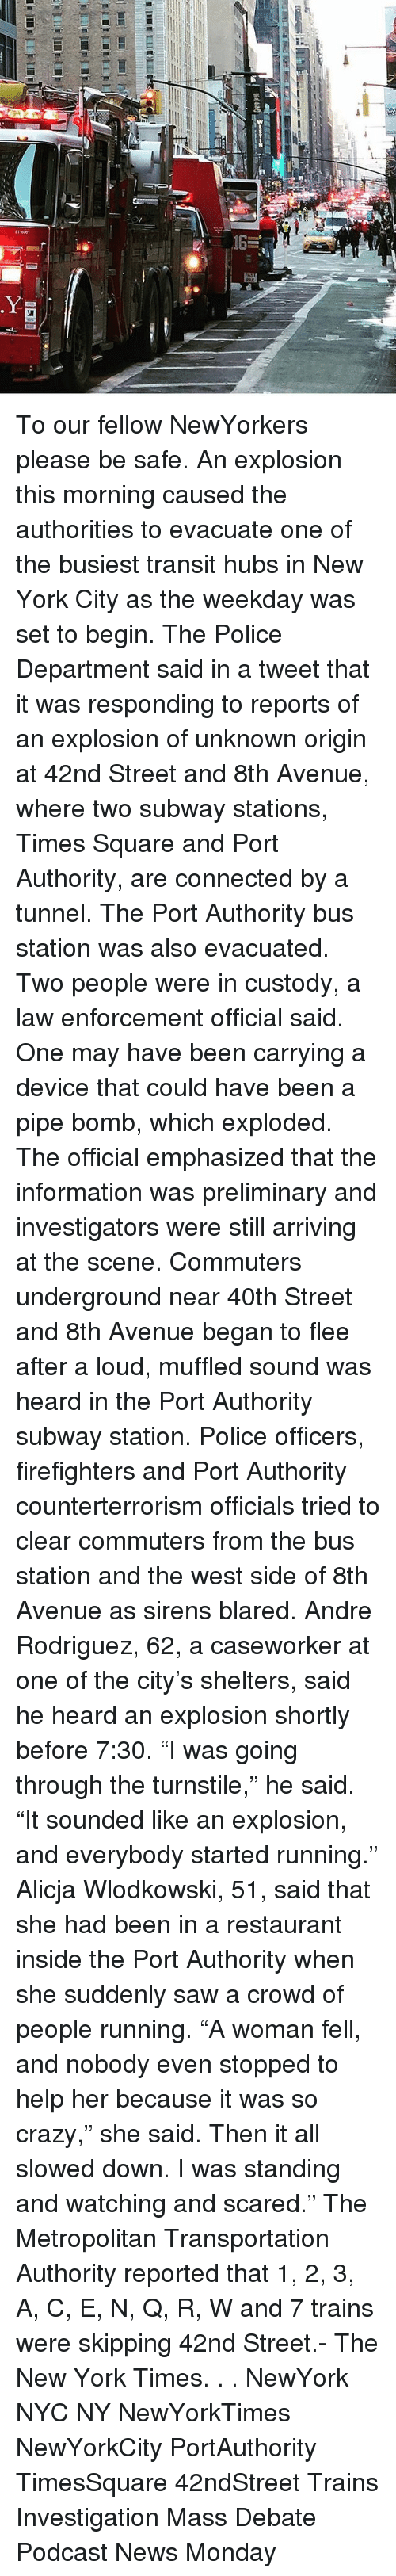 """Crazy, Memes, and New York: sTI6o01 To our fellow NewYorkers please be safe. An explosion this morning caused the authorities to evacuate one of the busiest transit hubs in New York City as the weekday was set to begin. The Police Department said in a tweet that it was responding to reports of an explosion of unknown origin at 42nd Street and 8th Avenue, where two subway stations, Times Square and Port Authority, are connected by a tunnel. The Port Authority bus station was also evacuated. Two people were in custody, a law enforcement official said. One may have been carrying a device that could have been a pipe bomb, which exploded. The official emphasized that the information was preliminary and investigators were still arriving at the scene. Commuters underground near 40th Street and 8th Avenue began to flee after a loud, muffled sound was heard in the Port Authority subway station. Police officers, firefighters and Port Authority counterterrorism officials tried to clear commuters from the bus station and the west side of 8th Avenue as sirens blared. Andre Rodriguez, 62, a caseworker at one of the city's shelters, said he heard an explosion shortly before 7:30. """"I was going through the turnstile,"""" he said. """"It sounded like an explosion, and everybody started running."""" Alicja Wlodkowski, 51, said that she had been in a restaurant inside the Port Authority when she suddenly saw a crowd of people running. """"A woman fell, and nobody even stopped to help her because it was so crazy,"""" she said. Then it all slowed down. I was standing and watching and scared."""" The Metropolitan Transportation Authority reported that 1, 2, 3, A, C, E, N, Q, R, W and 7 trains were skipping 42nd Street.- The New York Times. . . NewYork NYC NY NewYorkTimes NewYorkCity PortAuthority TimesSquare 42ndStreet Trains Investigation Mass Debate Podcast News Monday"""